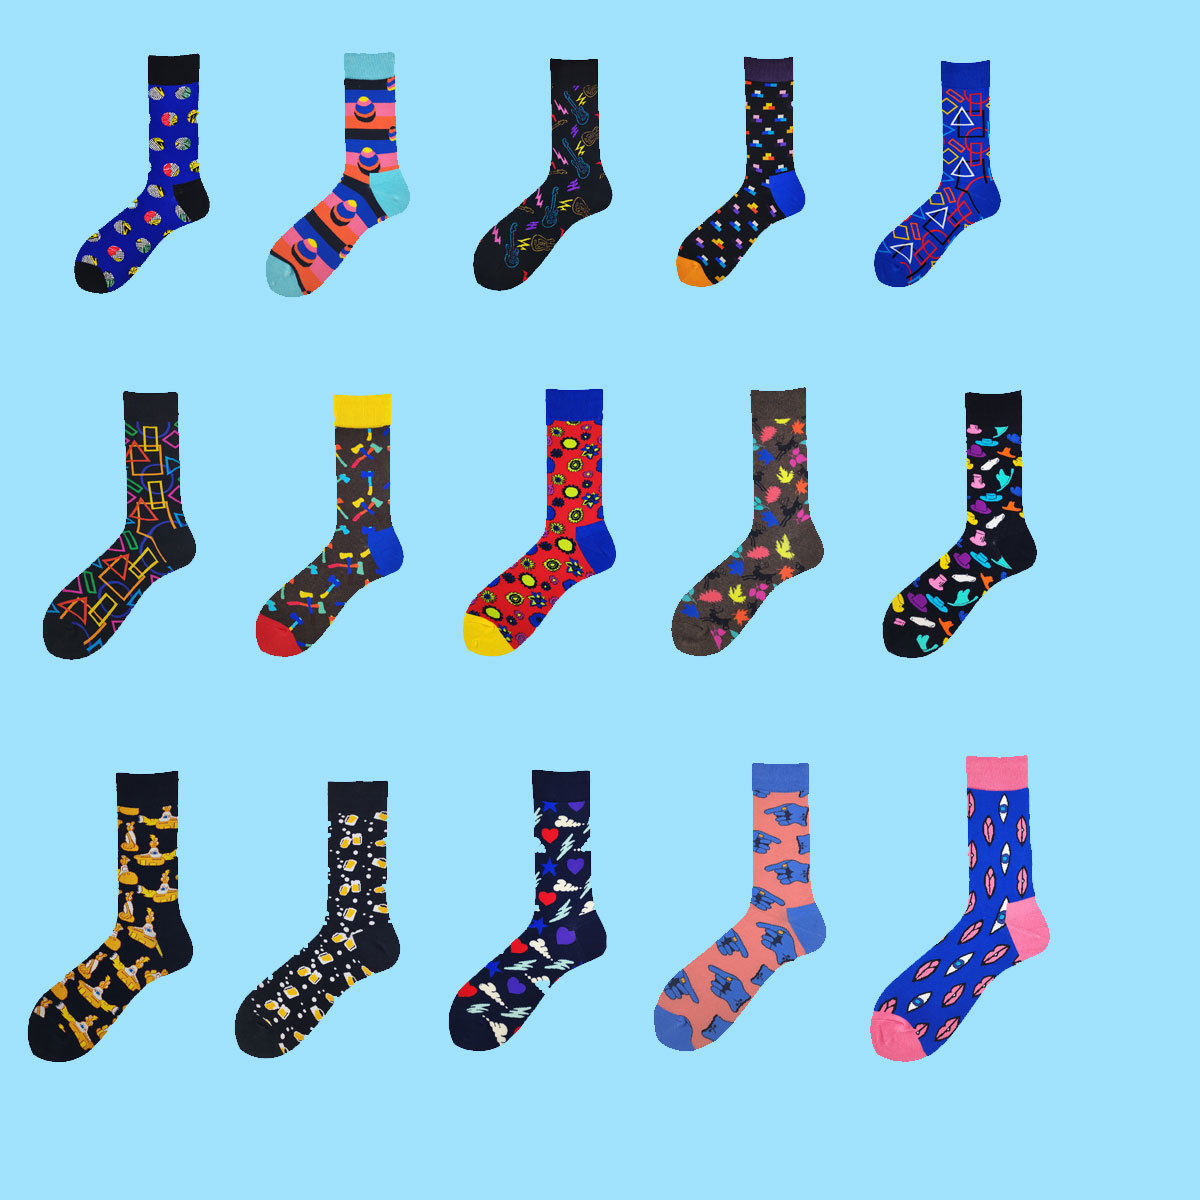 2018 Autumn Newly Winter Socks Men Fashion Hip Hop 21Colors Colorful Cotton Animal Floral Submarine Happy Socks